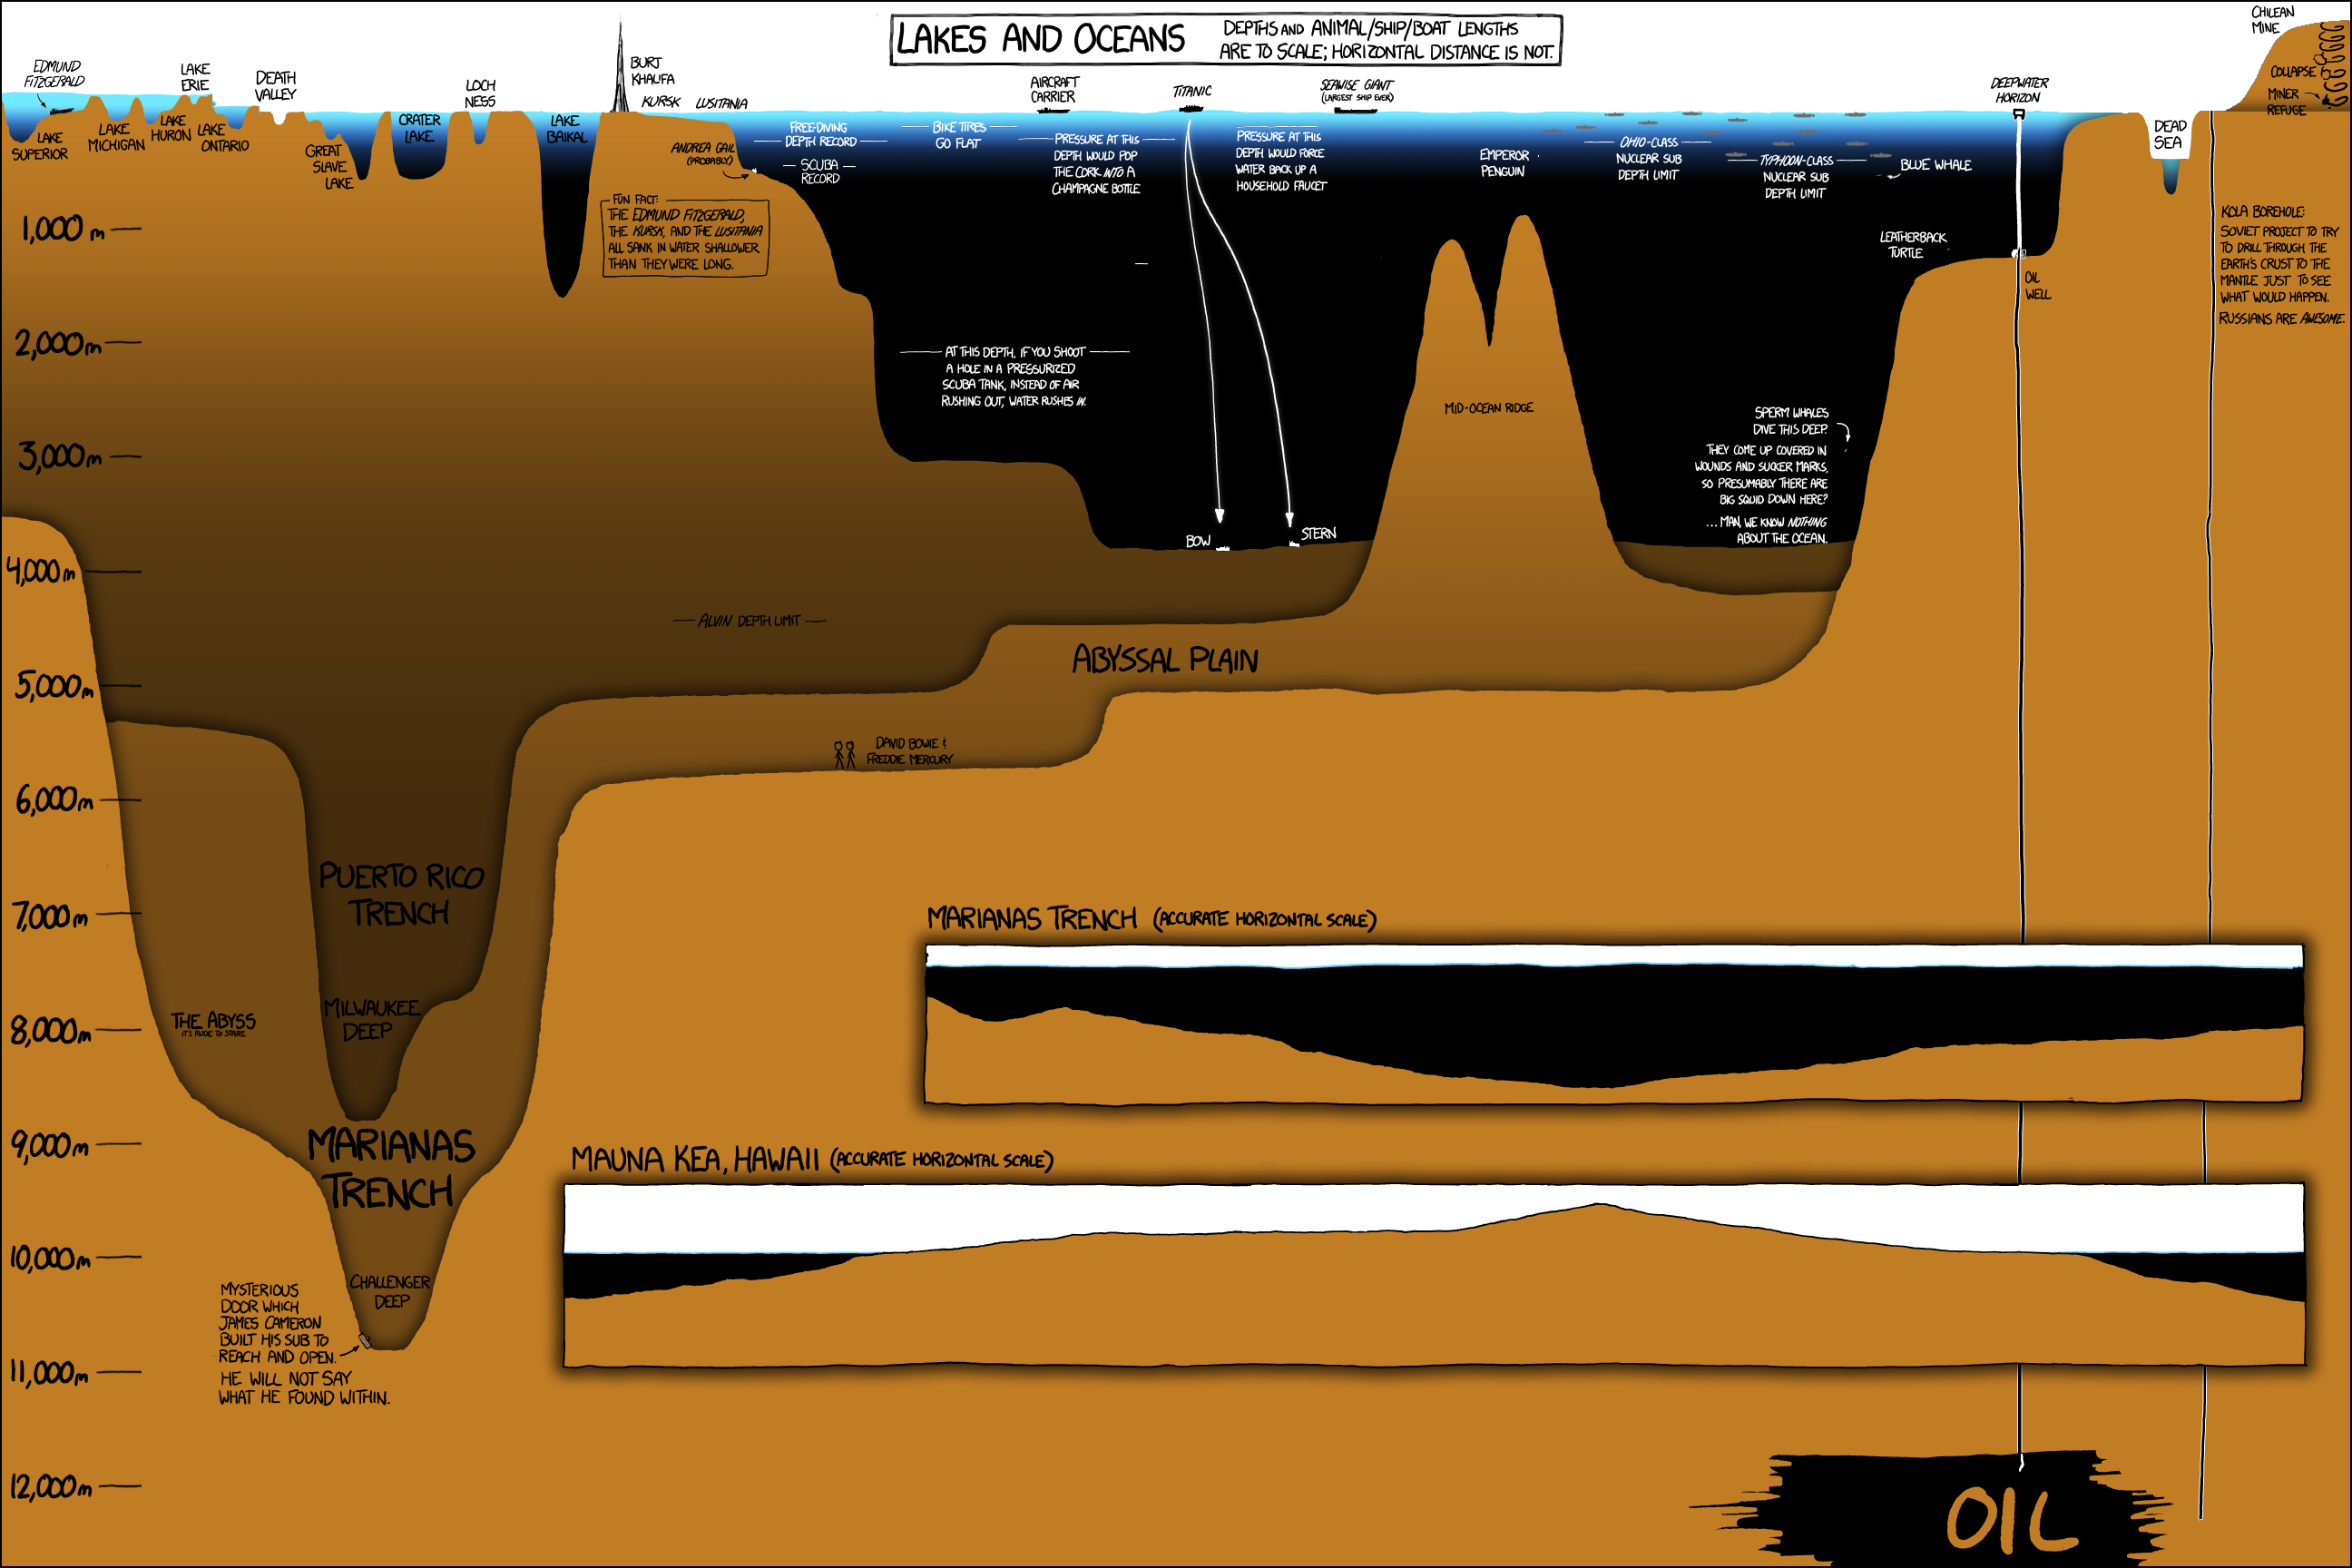 Another amazing infographic. Relative depths of the ocean! Neat!